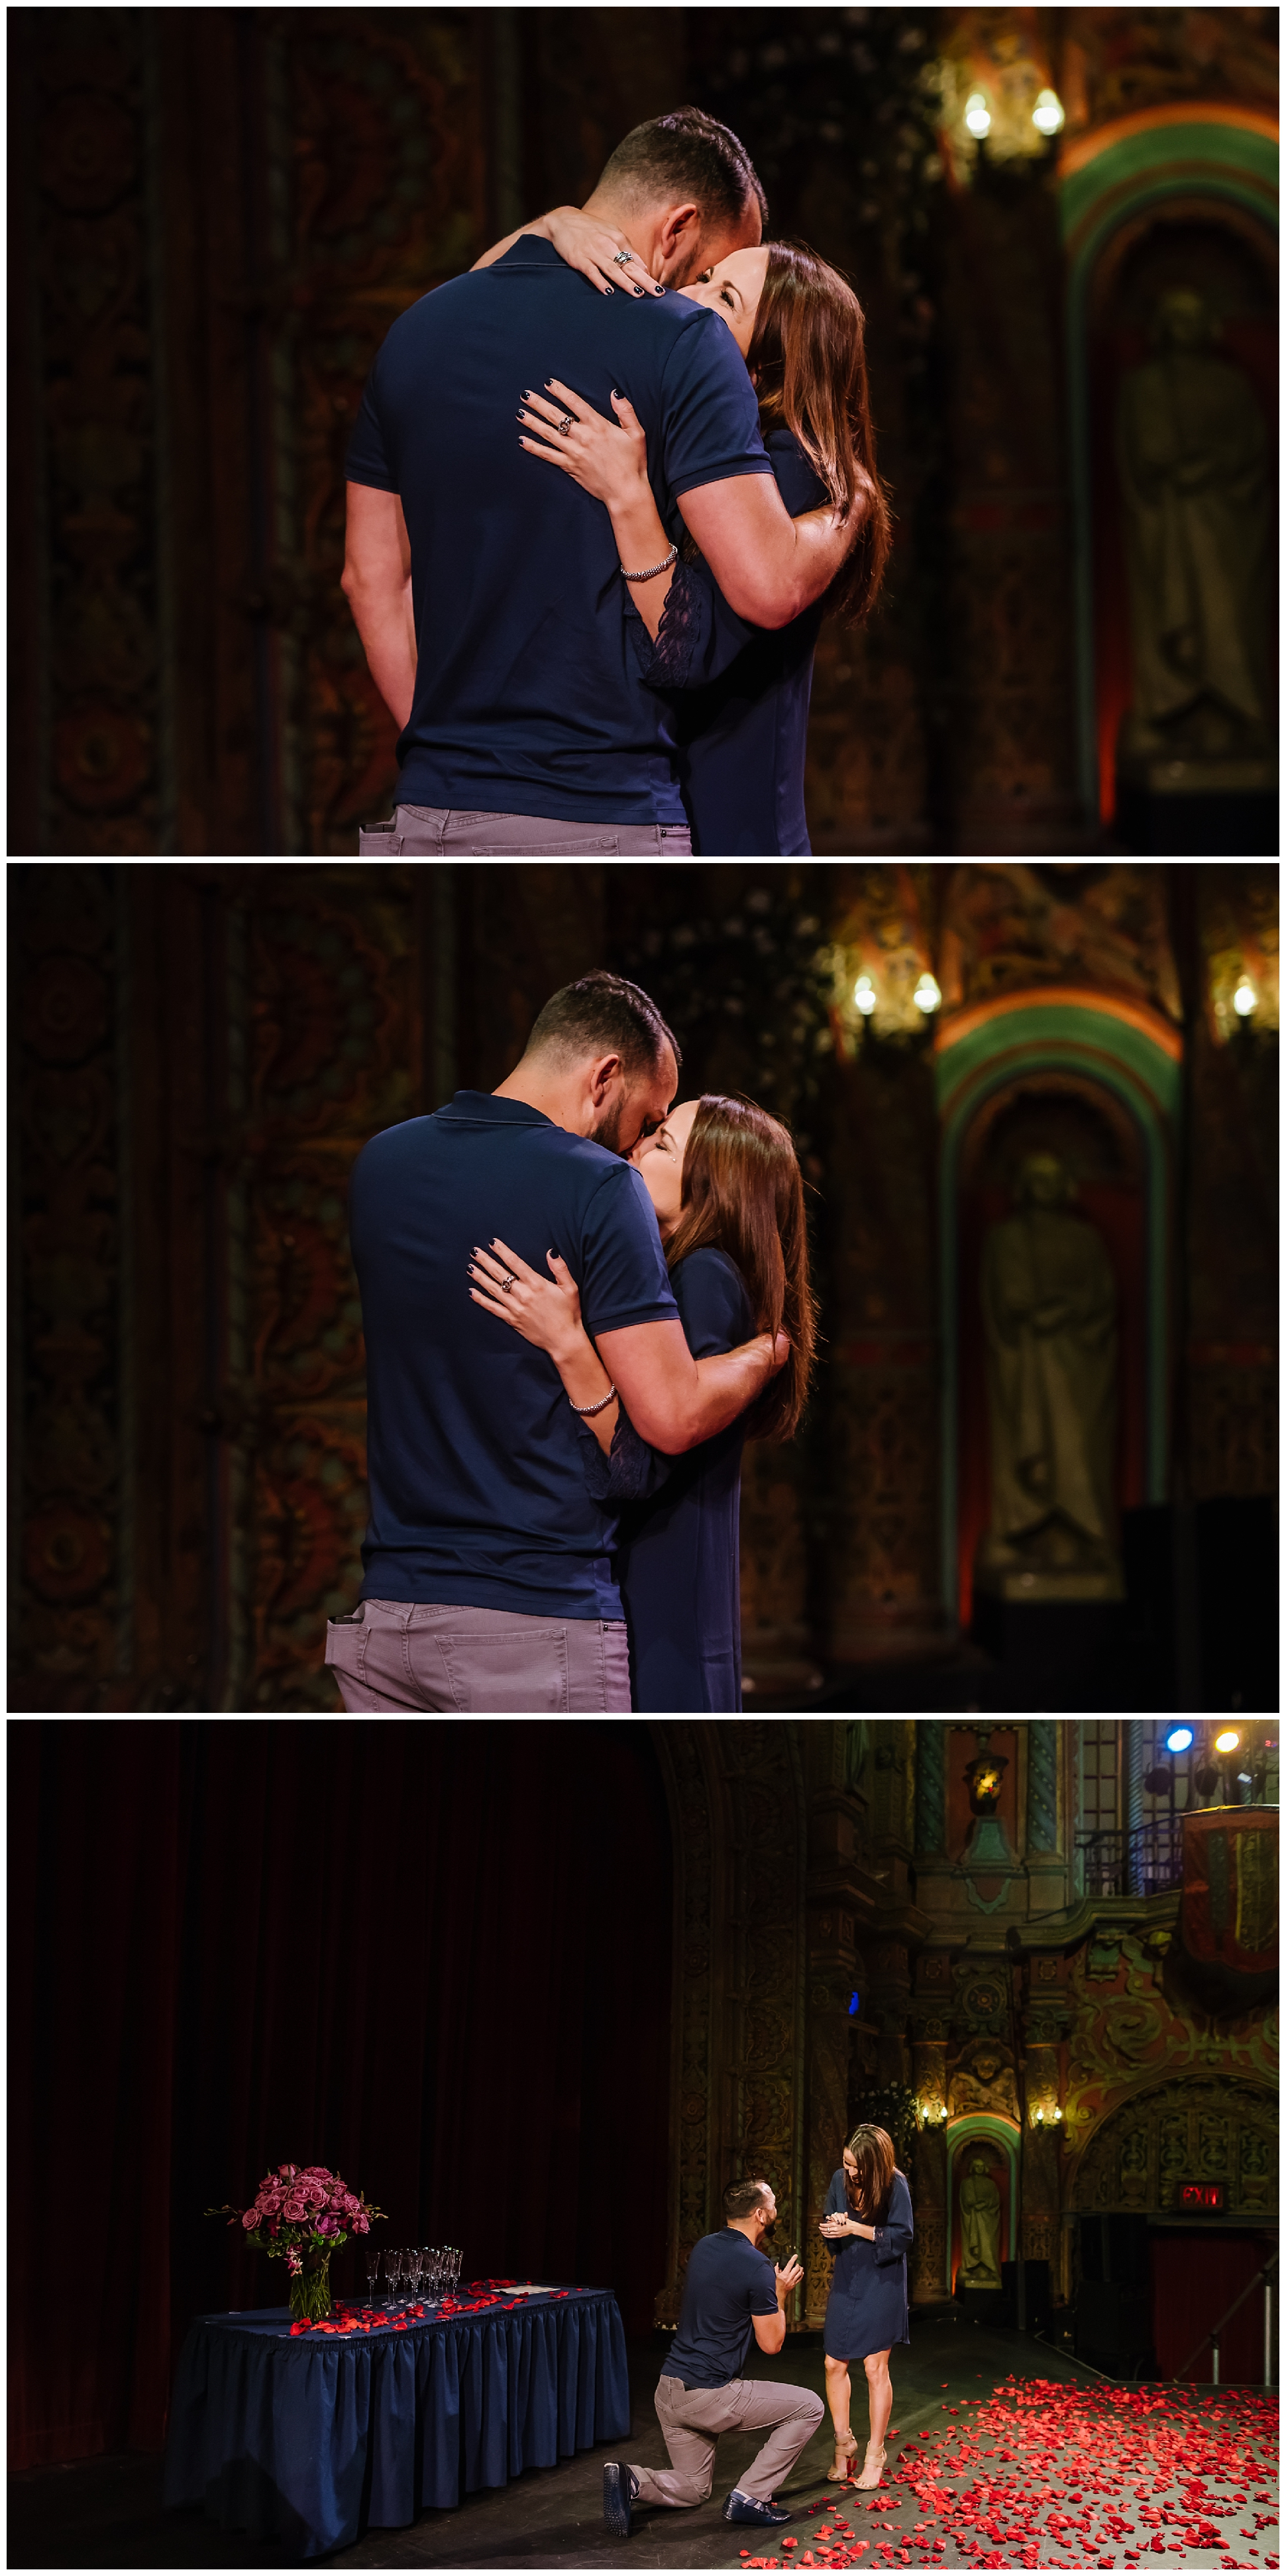 tampa-theater-romantic-surprise-proposal-red-roses-photographer_0008.jpg